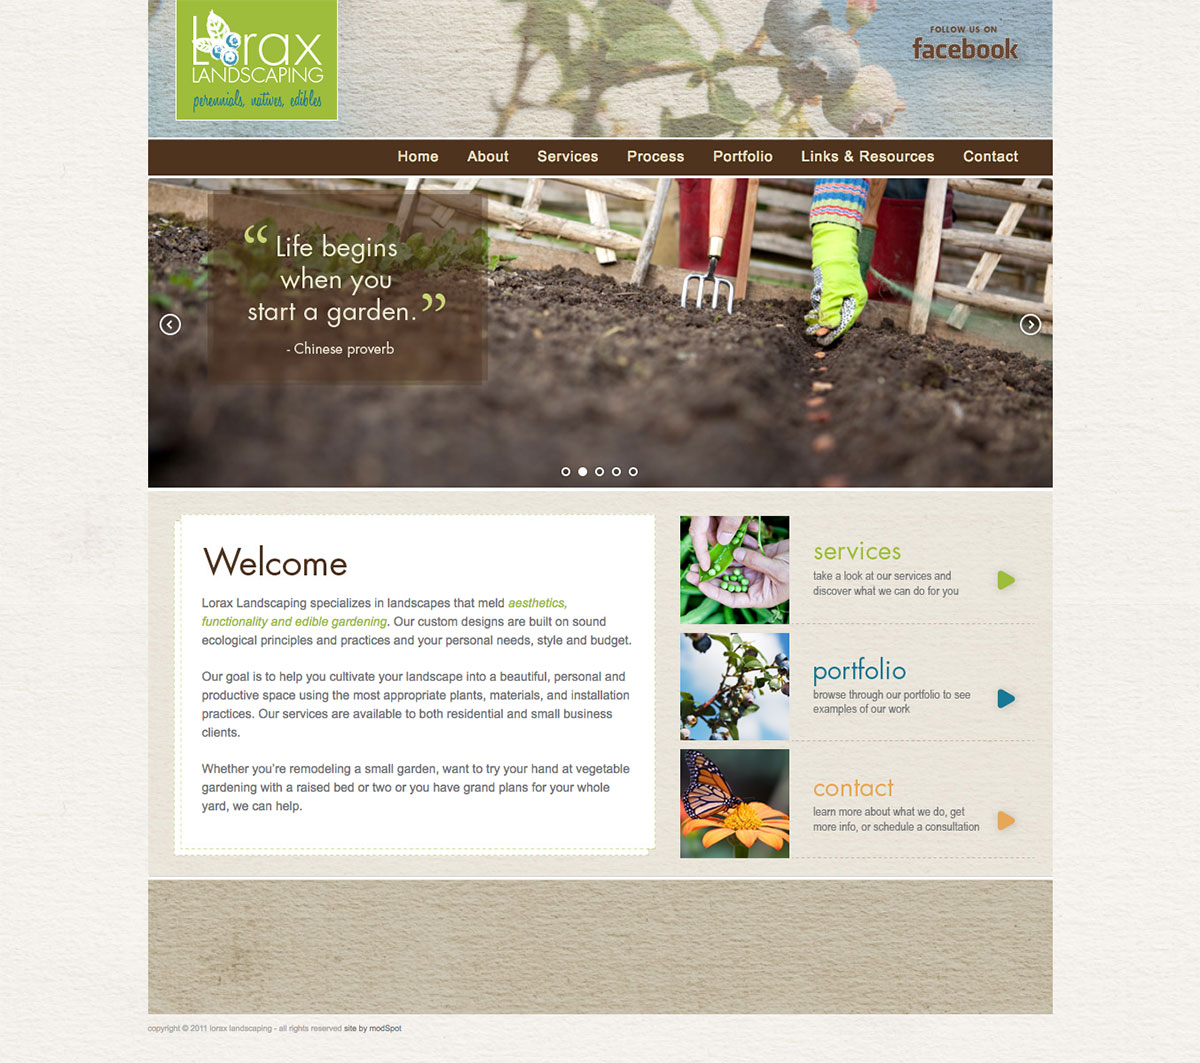 Lorax Landscaping website by ModSpot